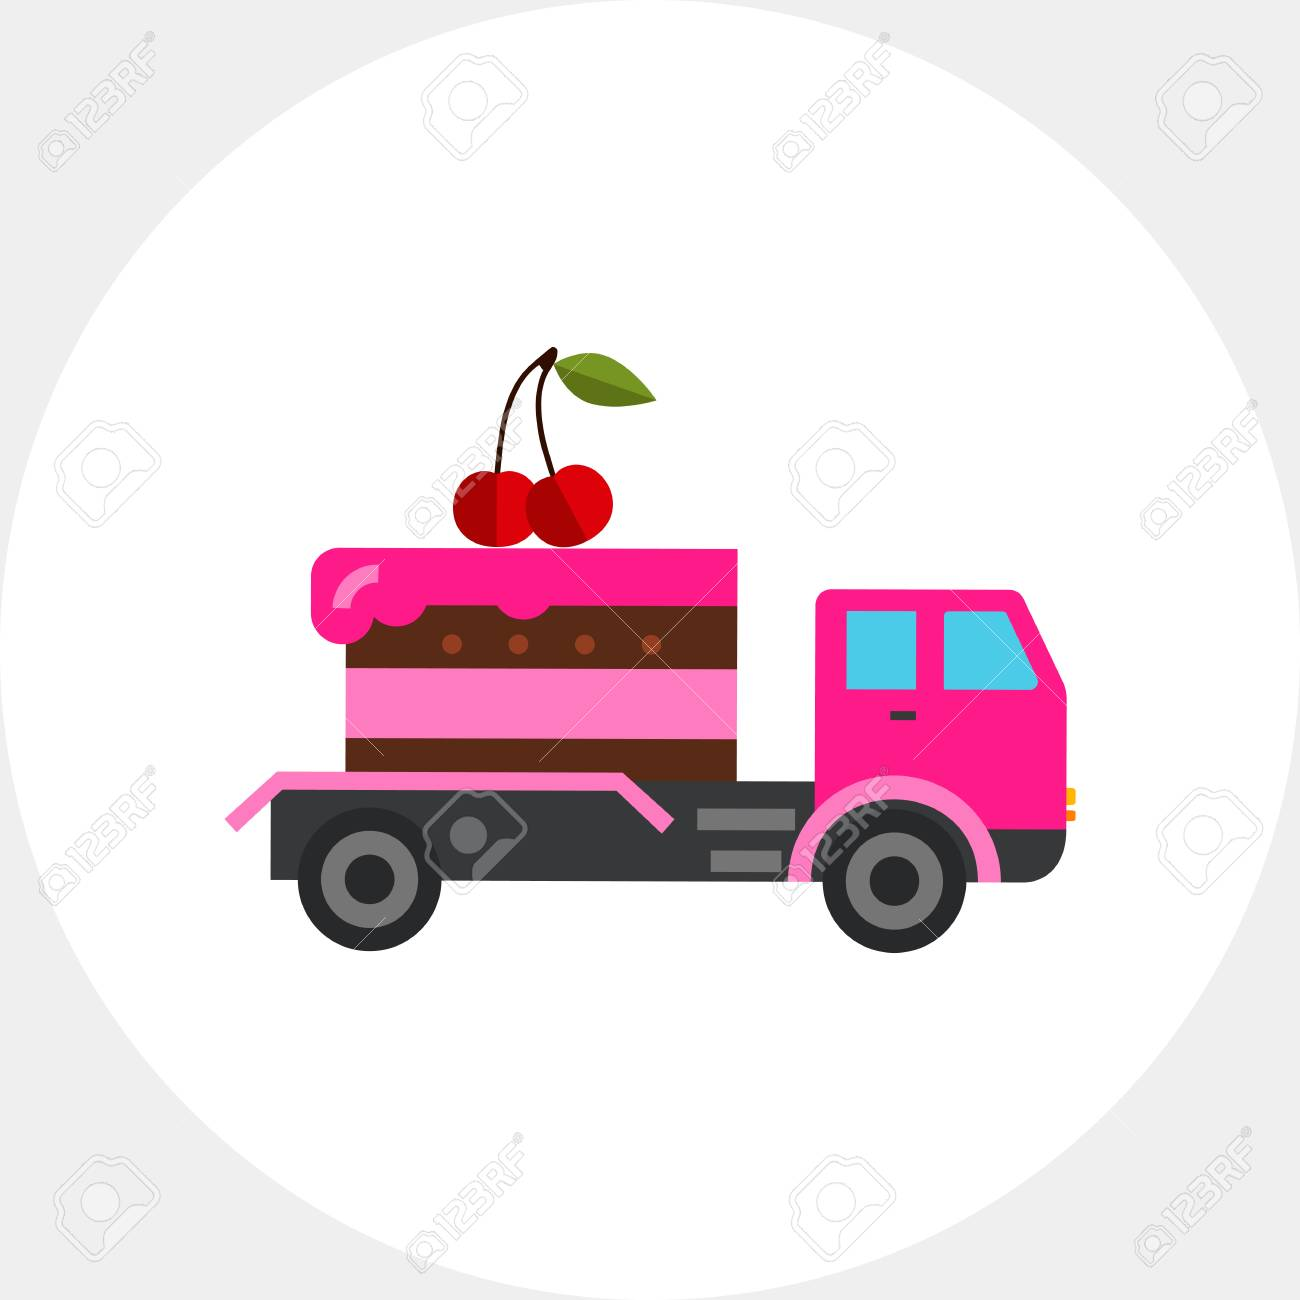 Cake Delivery By Truck Icon Stock Vector